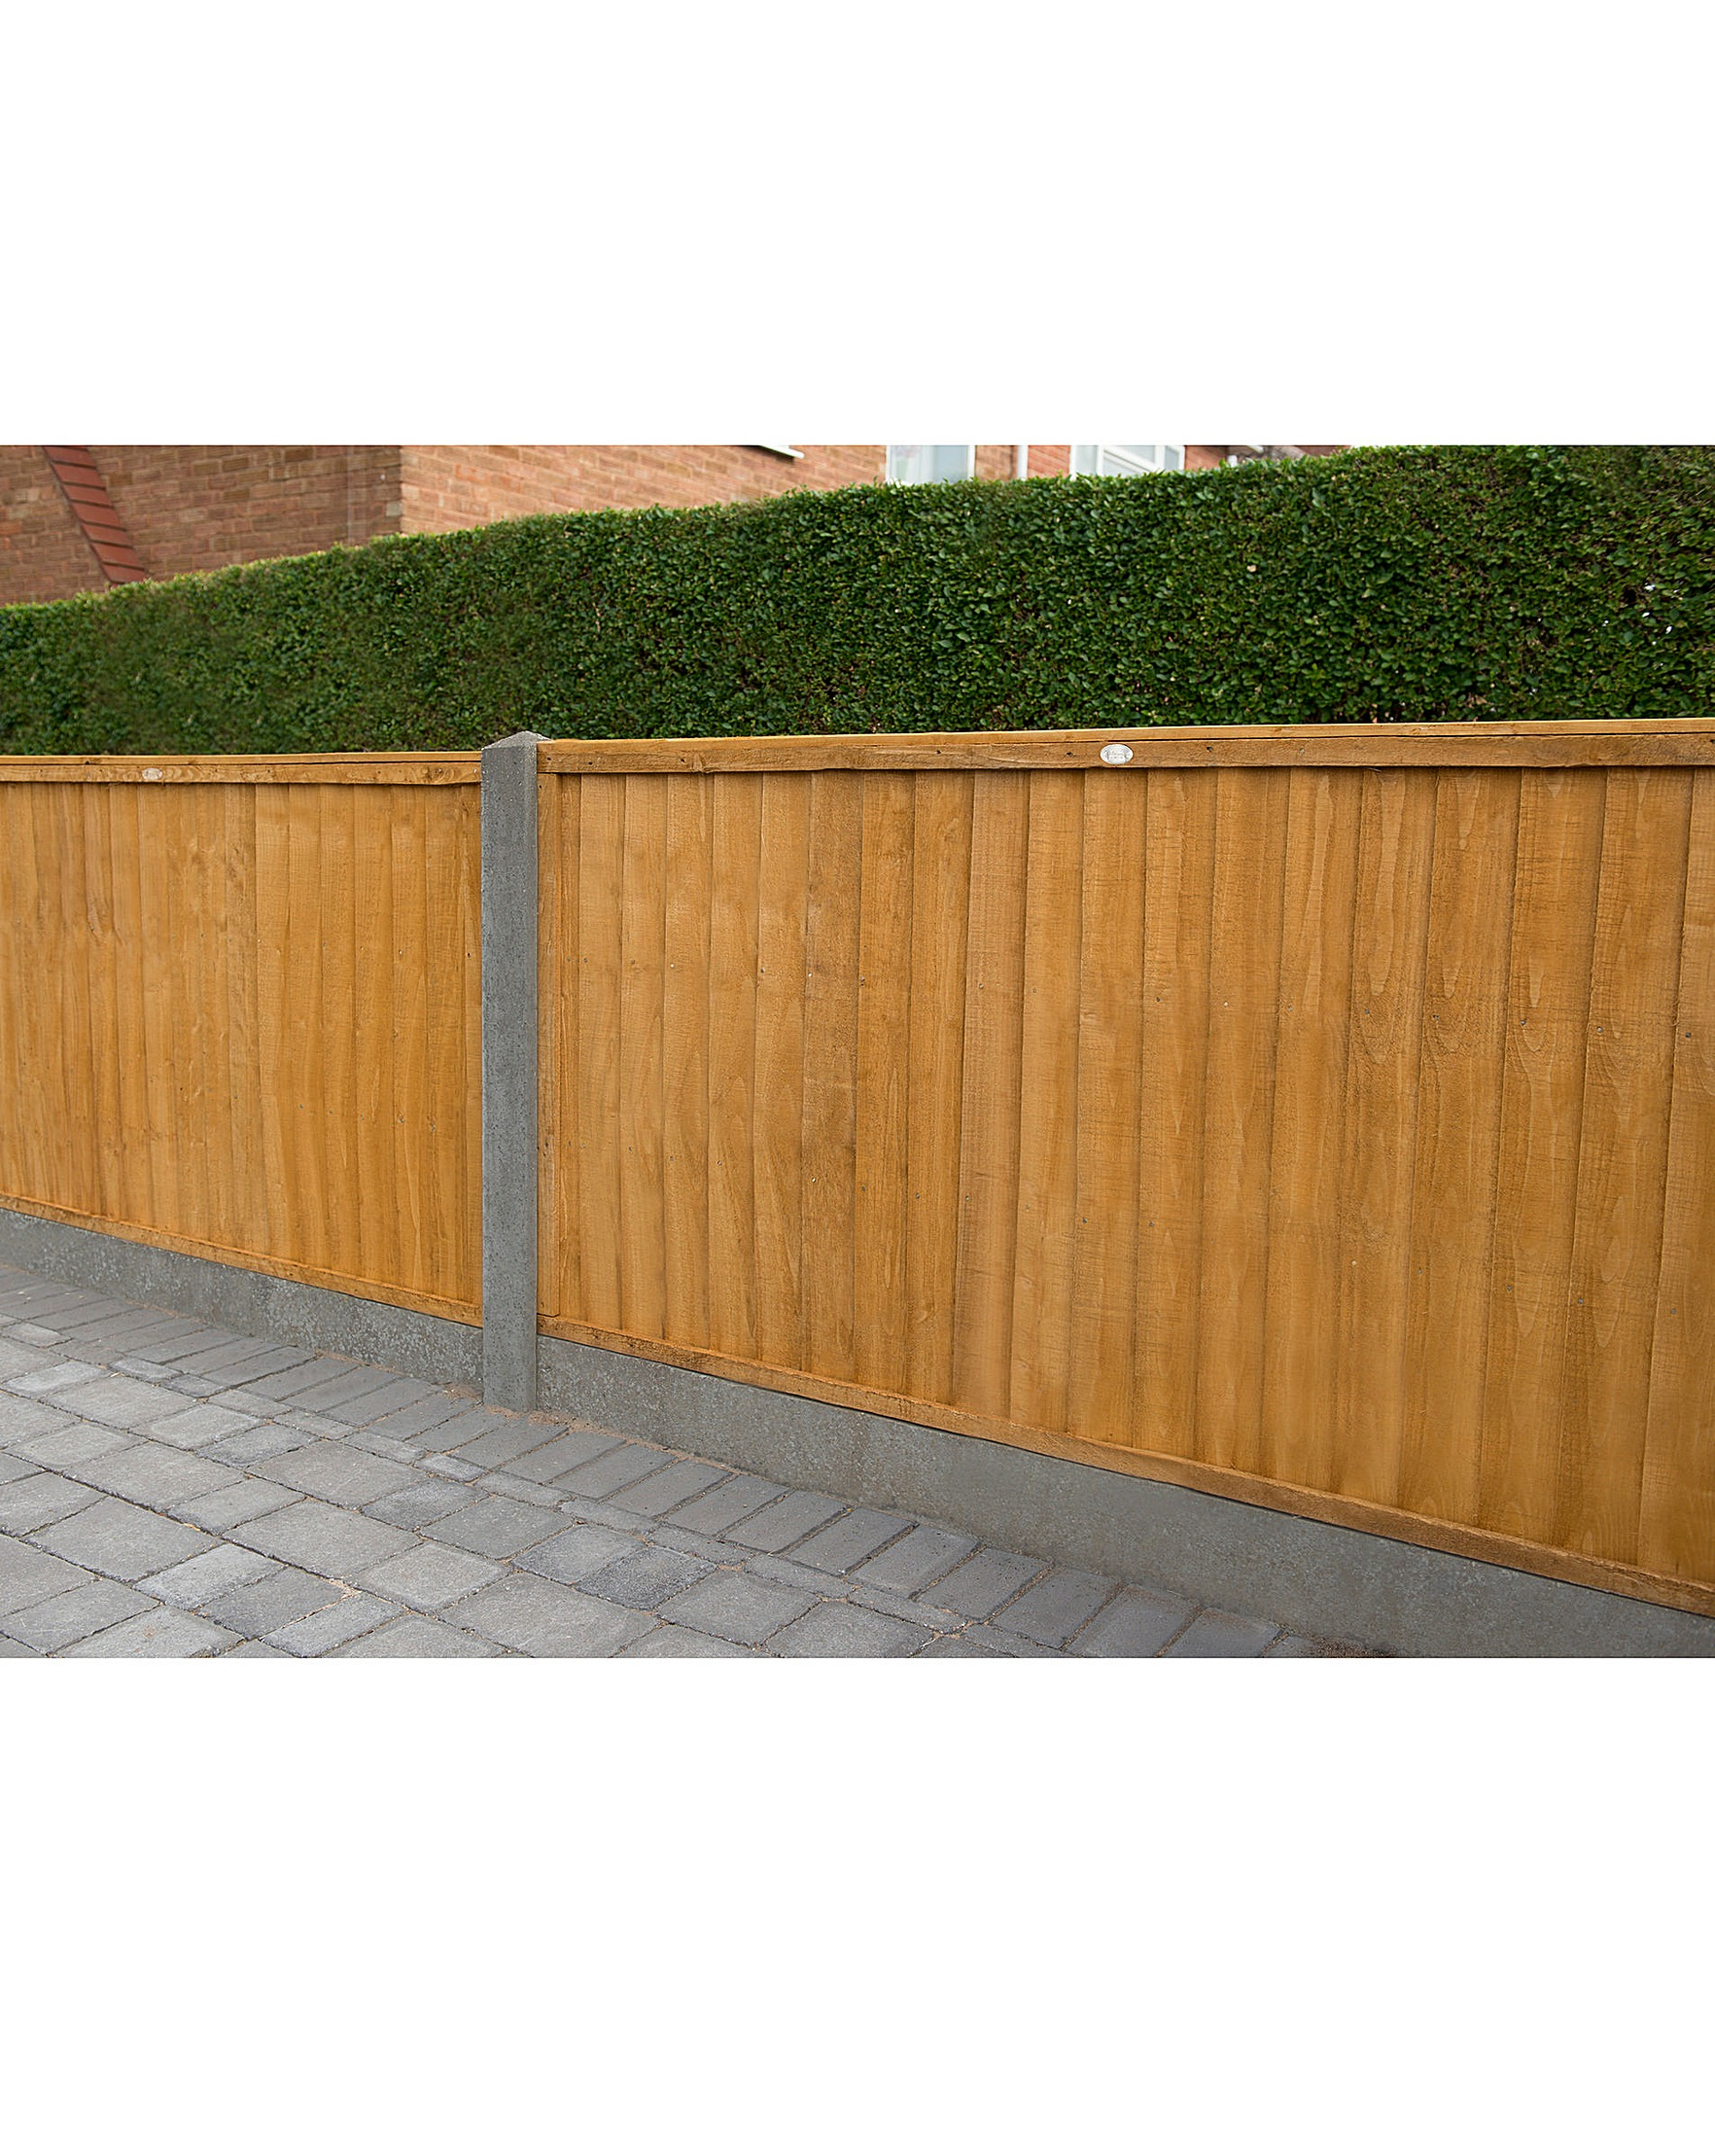 Pack of 5 Closeboard Fence Panels